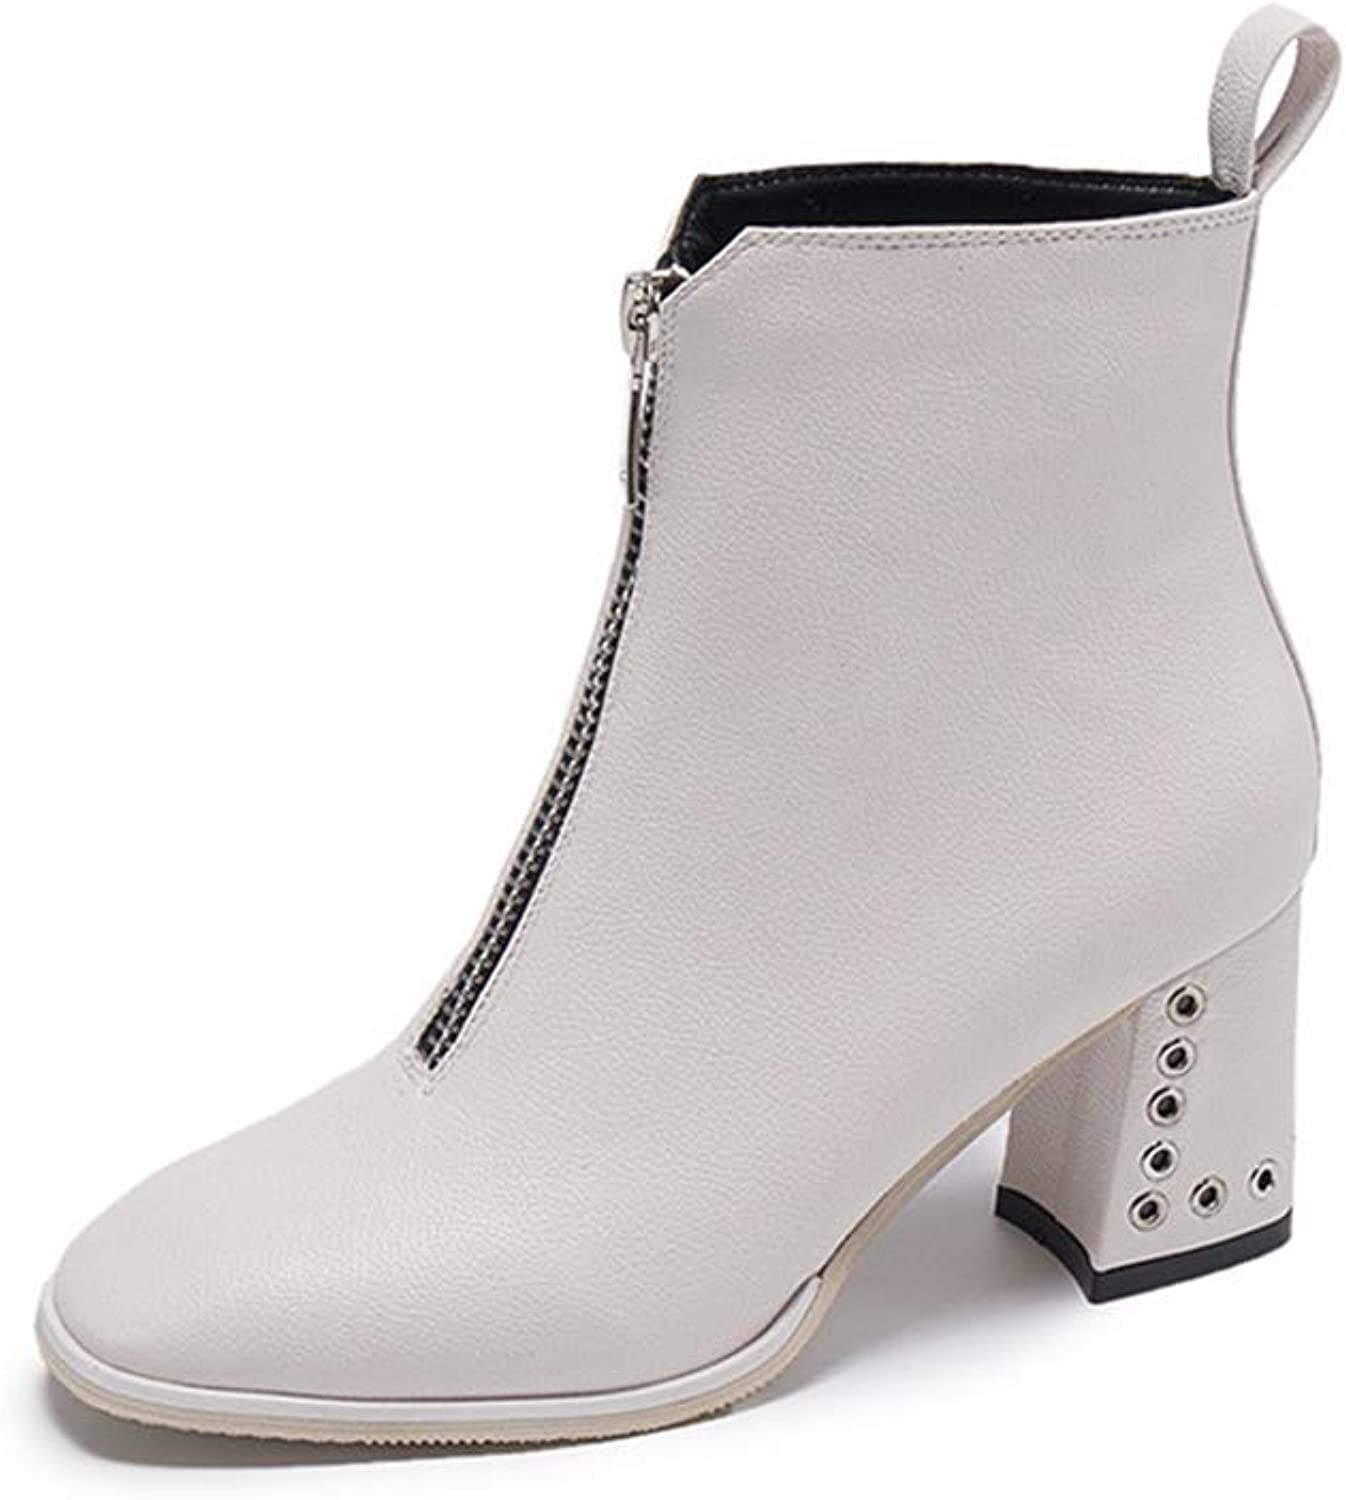 SANOMY Front Zipper Chelsea Booties for Women Metal Circle Rivets Chunky High Heels Warm Plush Leather Ankle Boots